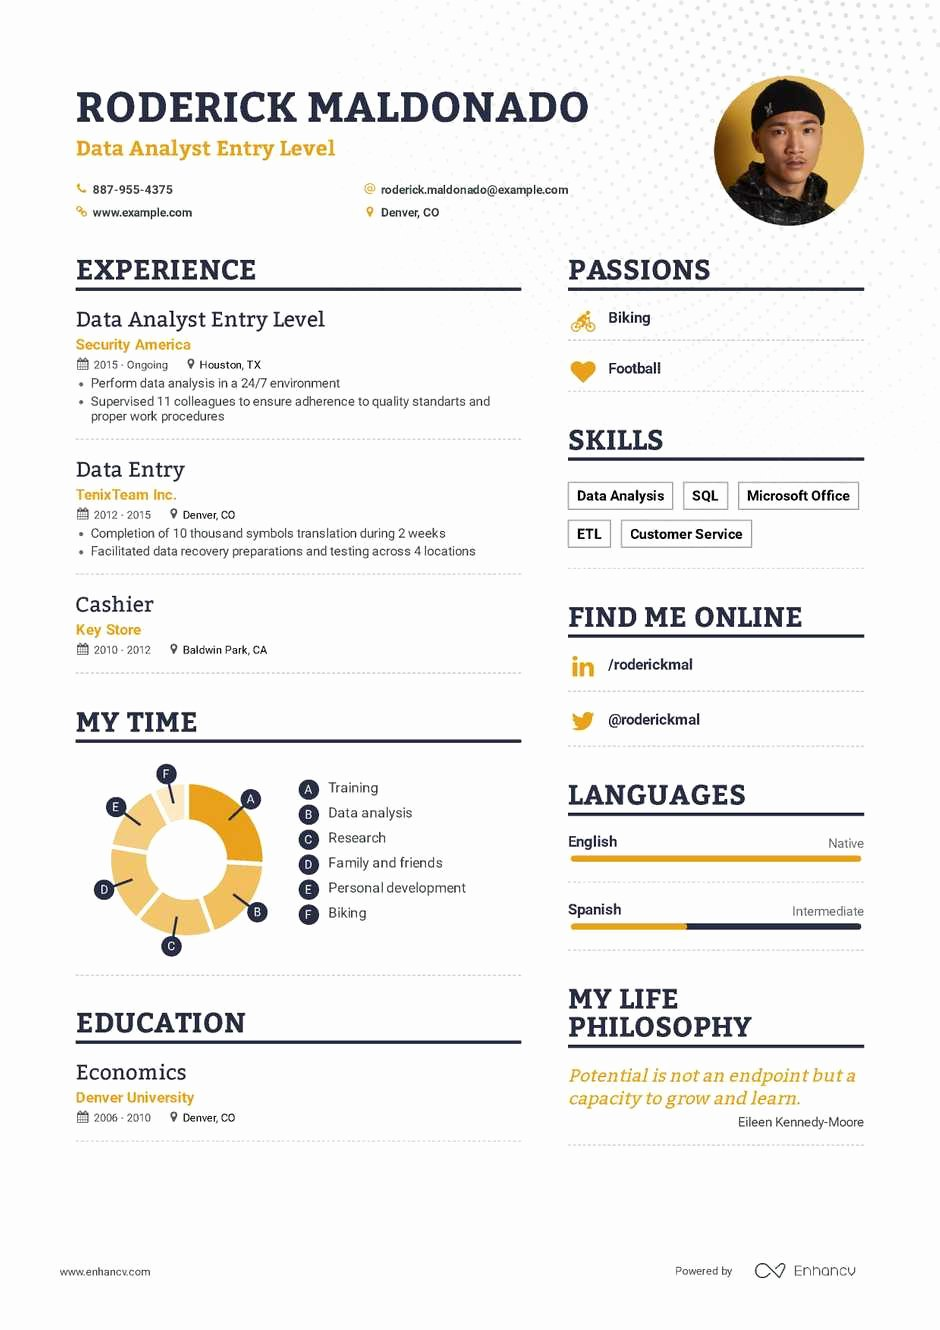 Entry Level Business Analyst Resume Luxury Data Analyst Entry Level Resume Example and Guide for 2019